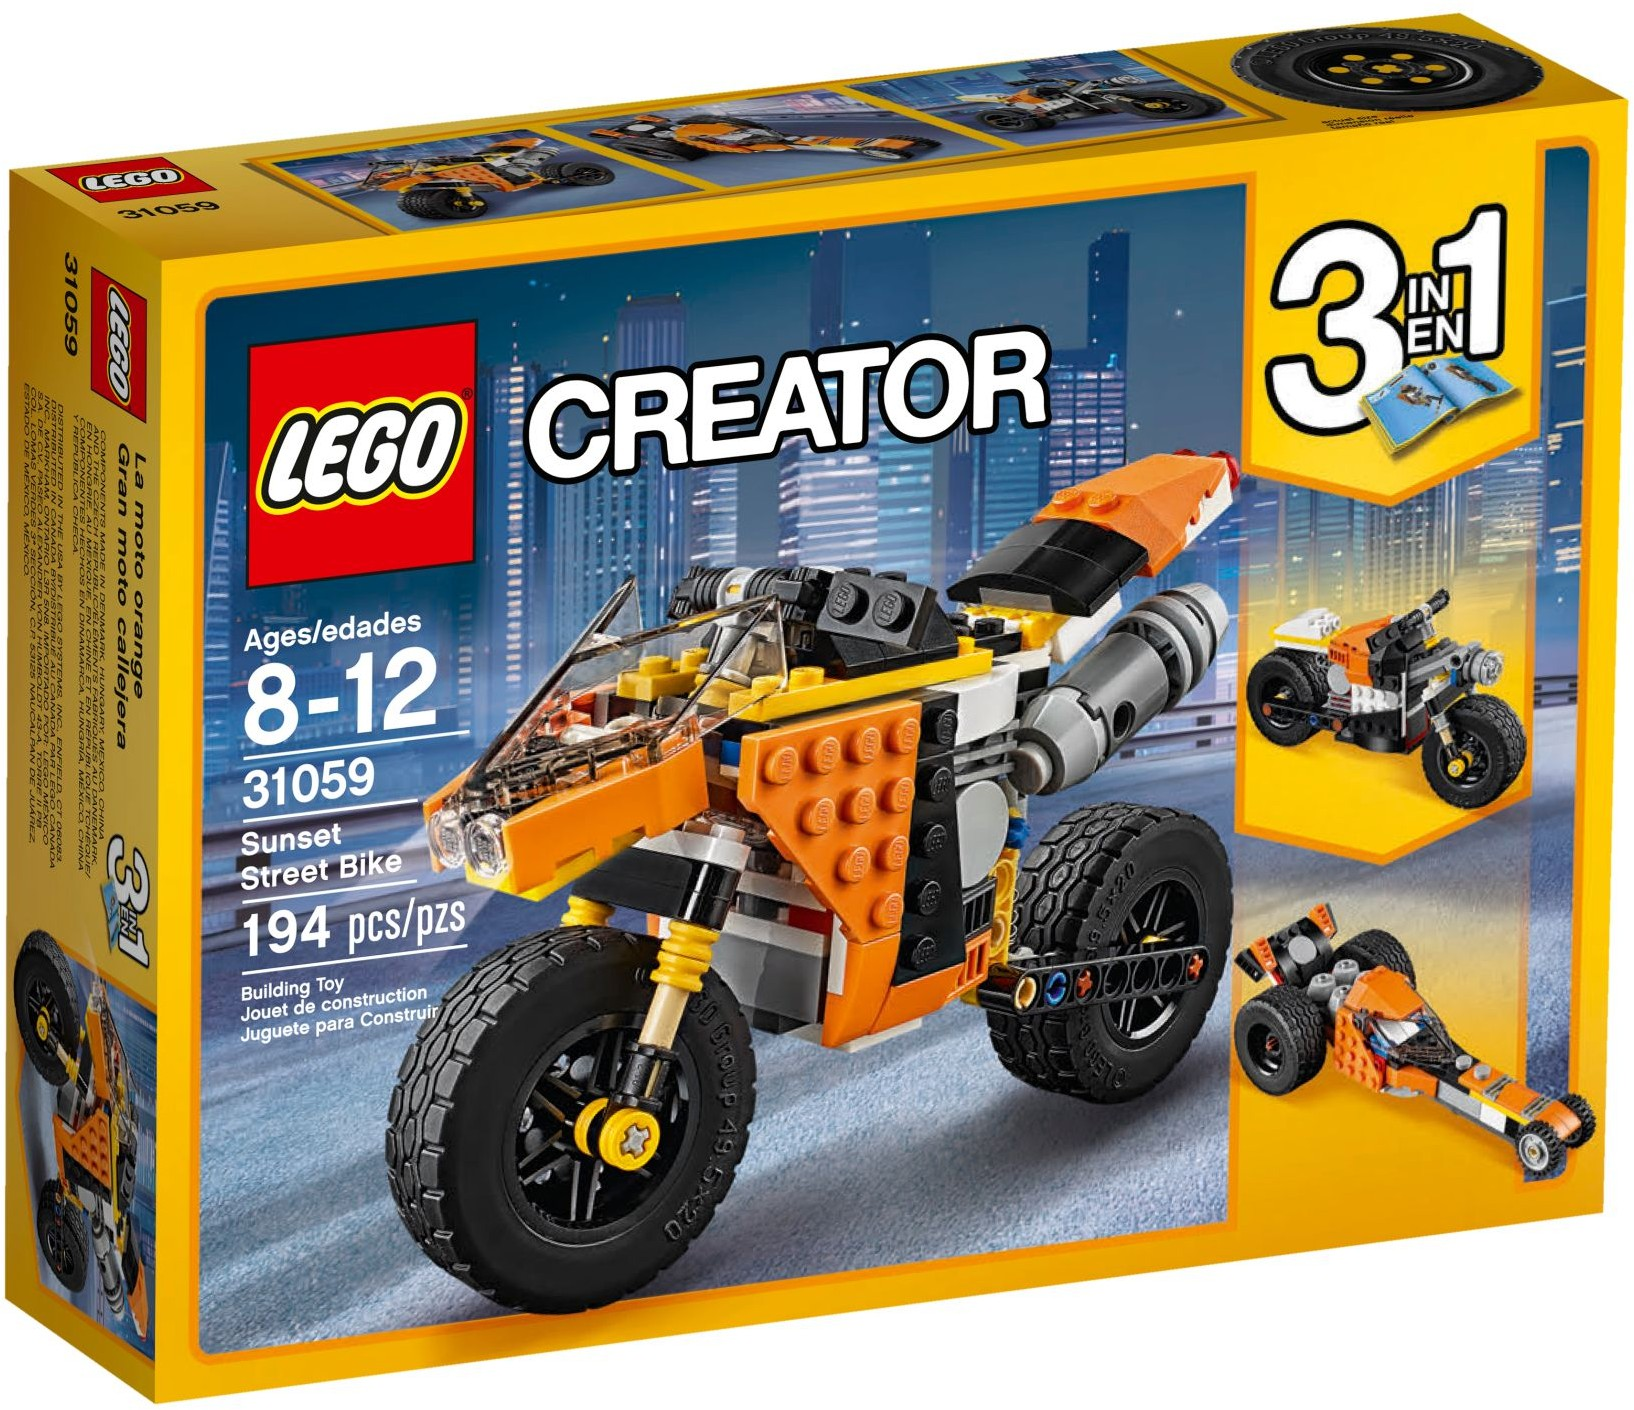 LEGO Creator Sets: 31059 Sunset Street Bike NEW